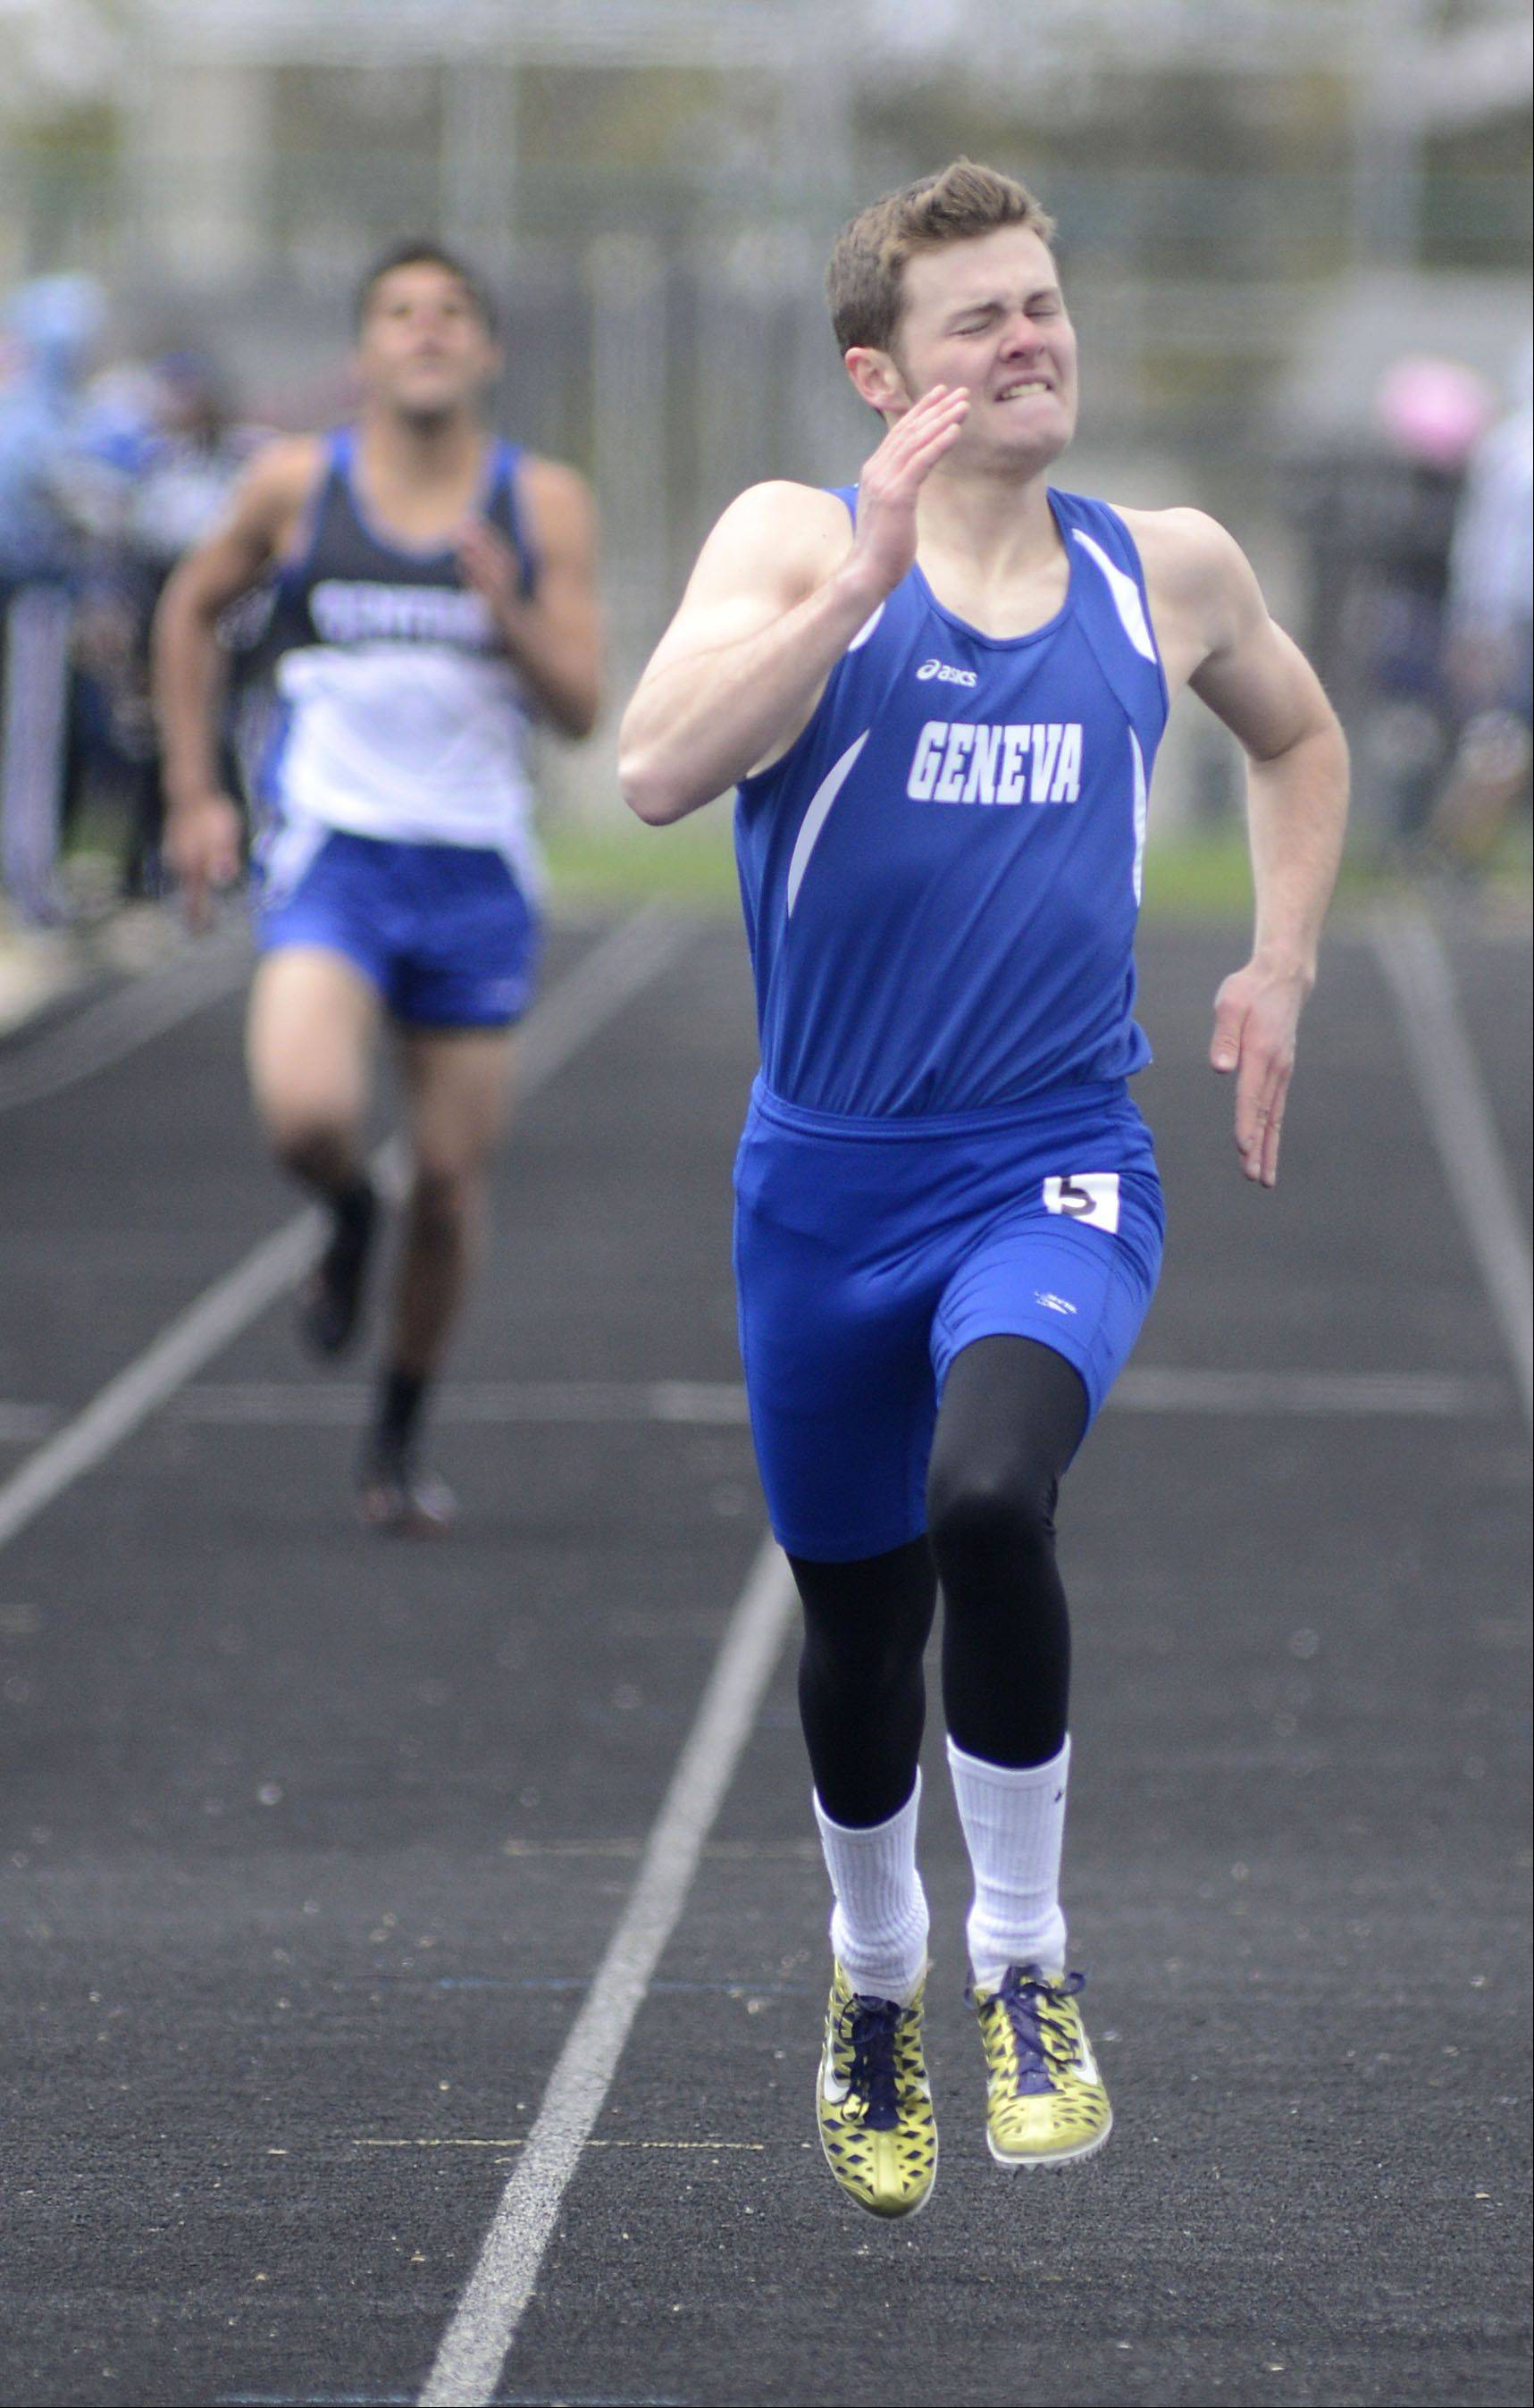 Geneva's Justin Davis in the 400 meter dash finals in the Kaneland meet on Saturday, April 20.